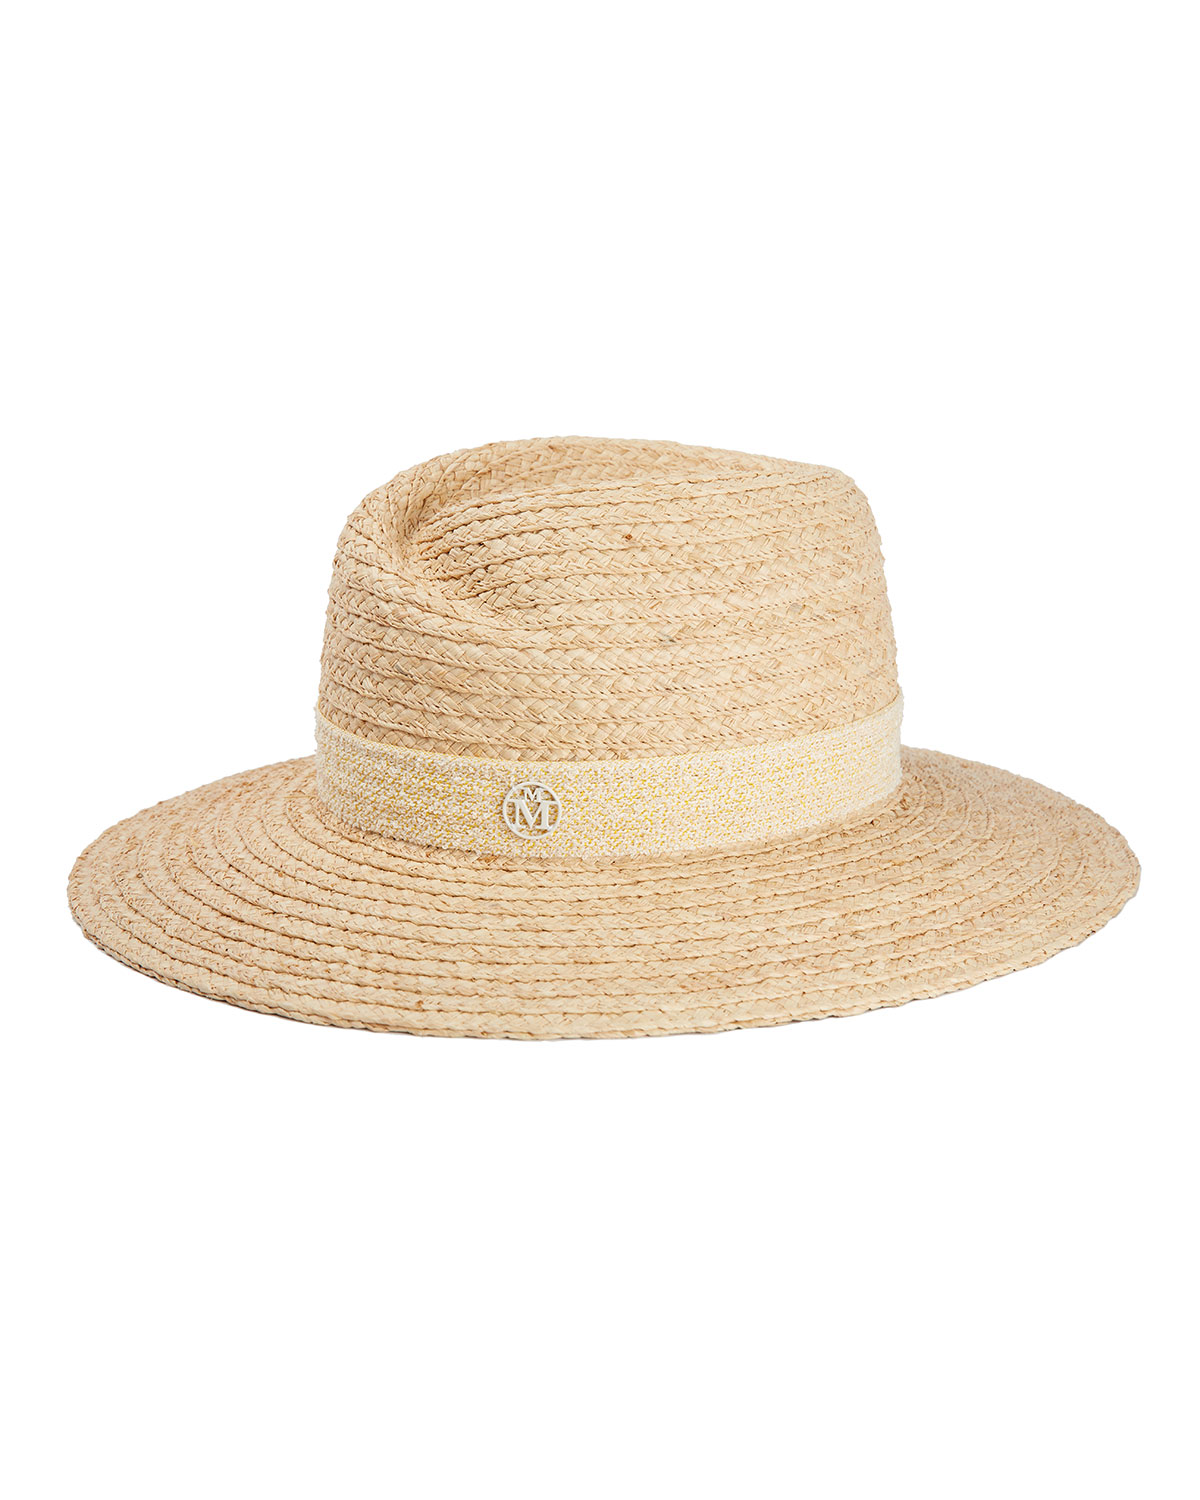 Maison Michel Hats VIRGINIE NATURAL STRAW FEDORA HAT